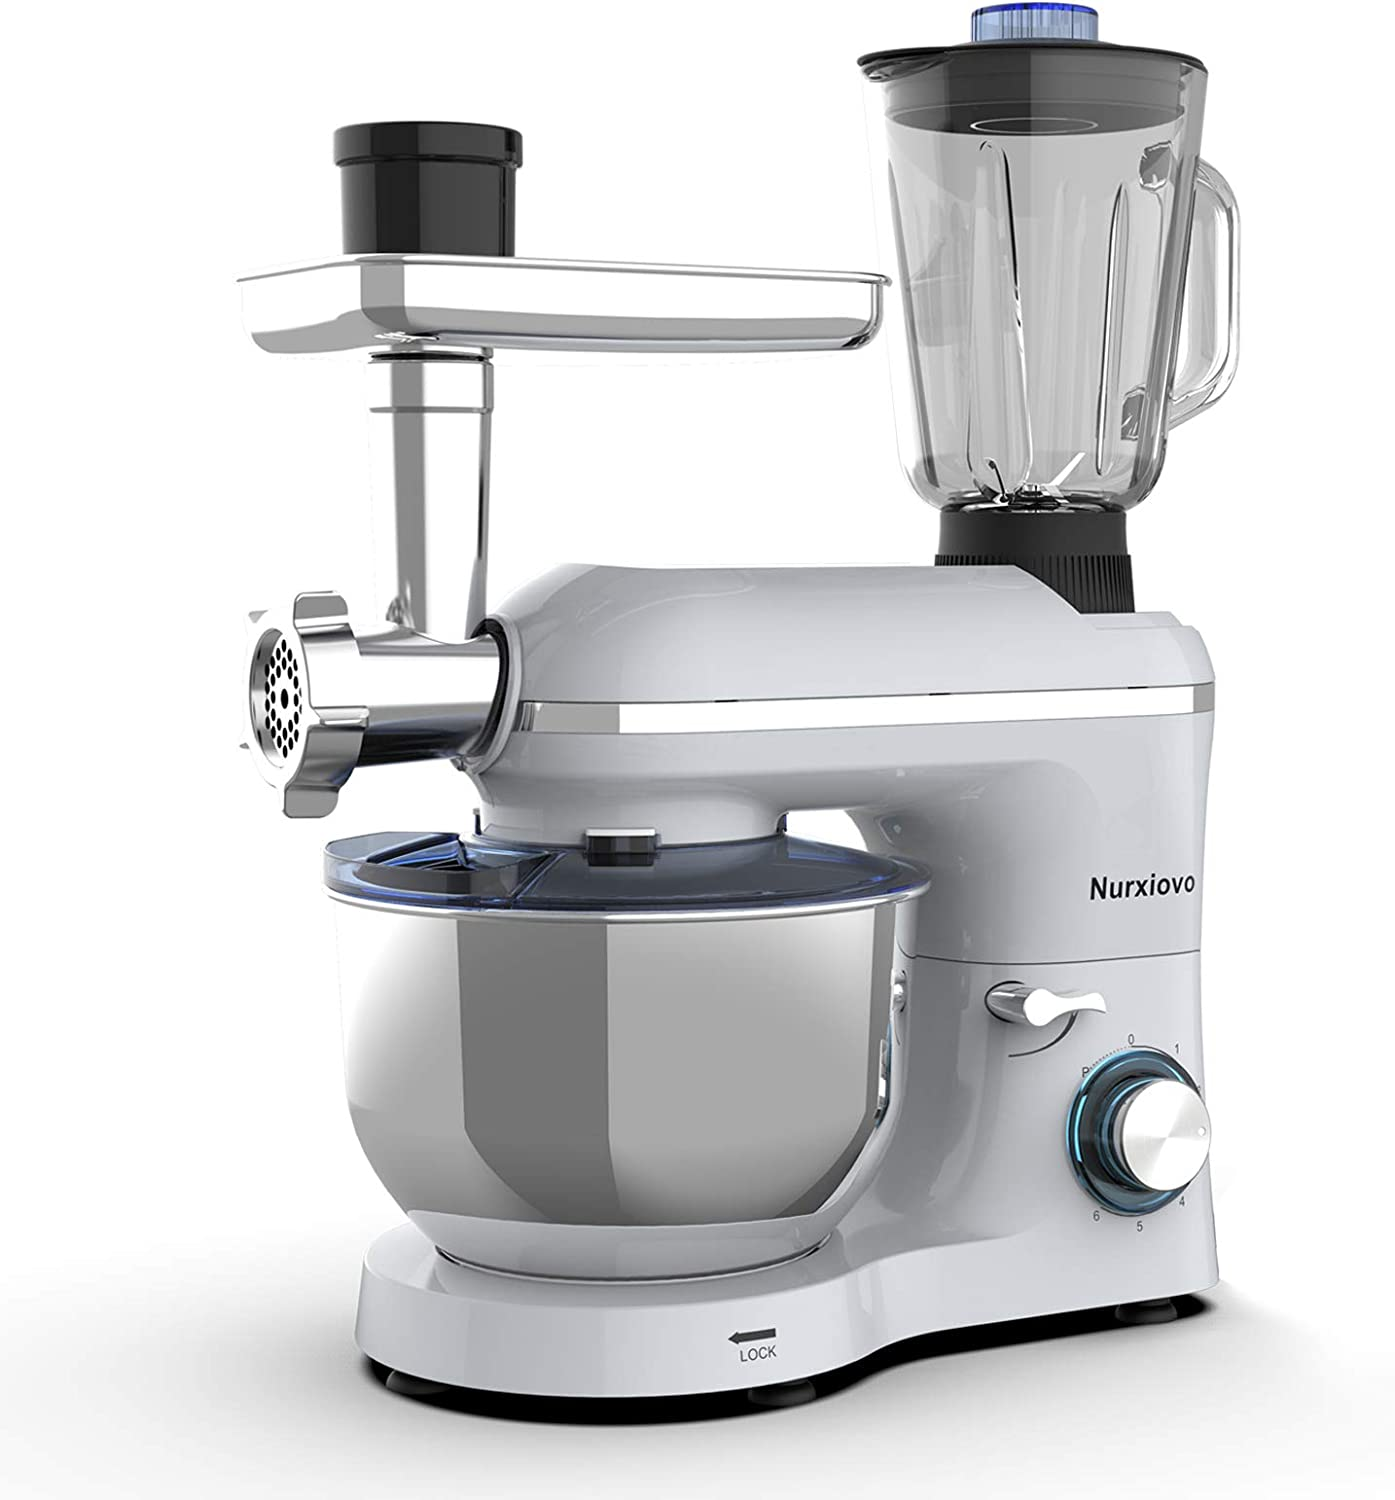 Nurxiovo 3 in 1 Stand Mixer Commercial Multifunctional Food Electric Kitchen Mixer 850W Tilt-Head Dough Machine with 6-1/2 Qt Stainless Steel Bowl, Hook, Whisk, Beater, Meat Blender and Juicer, Silver